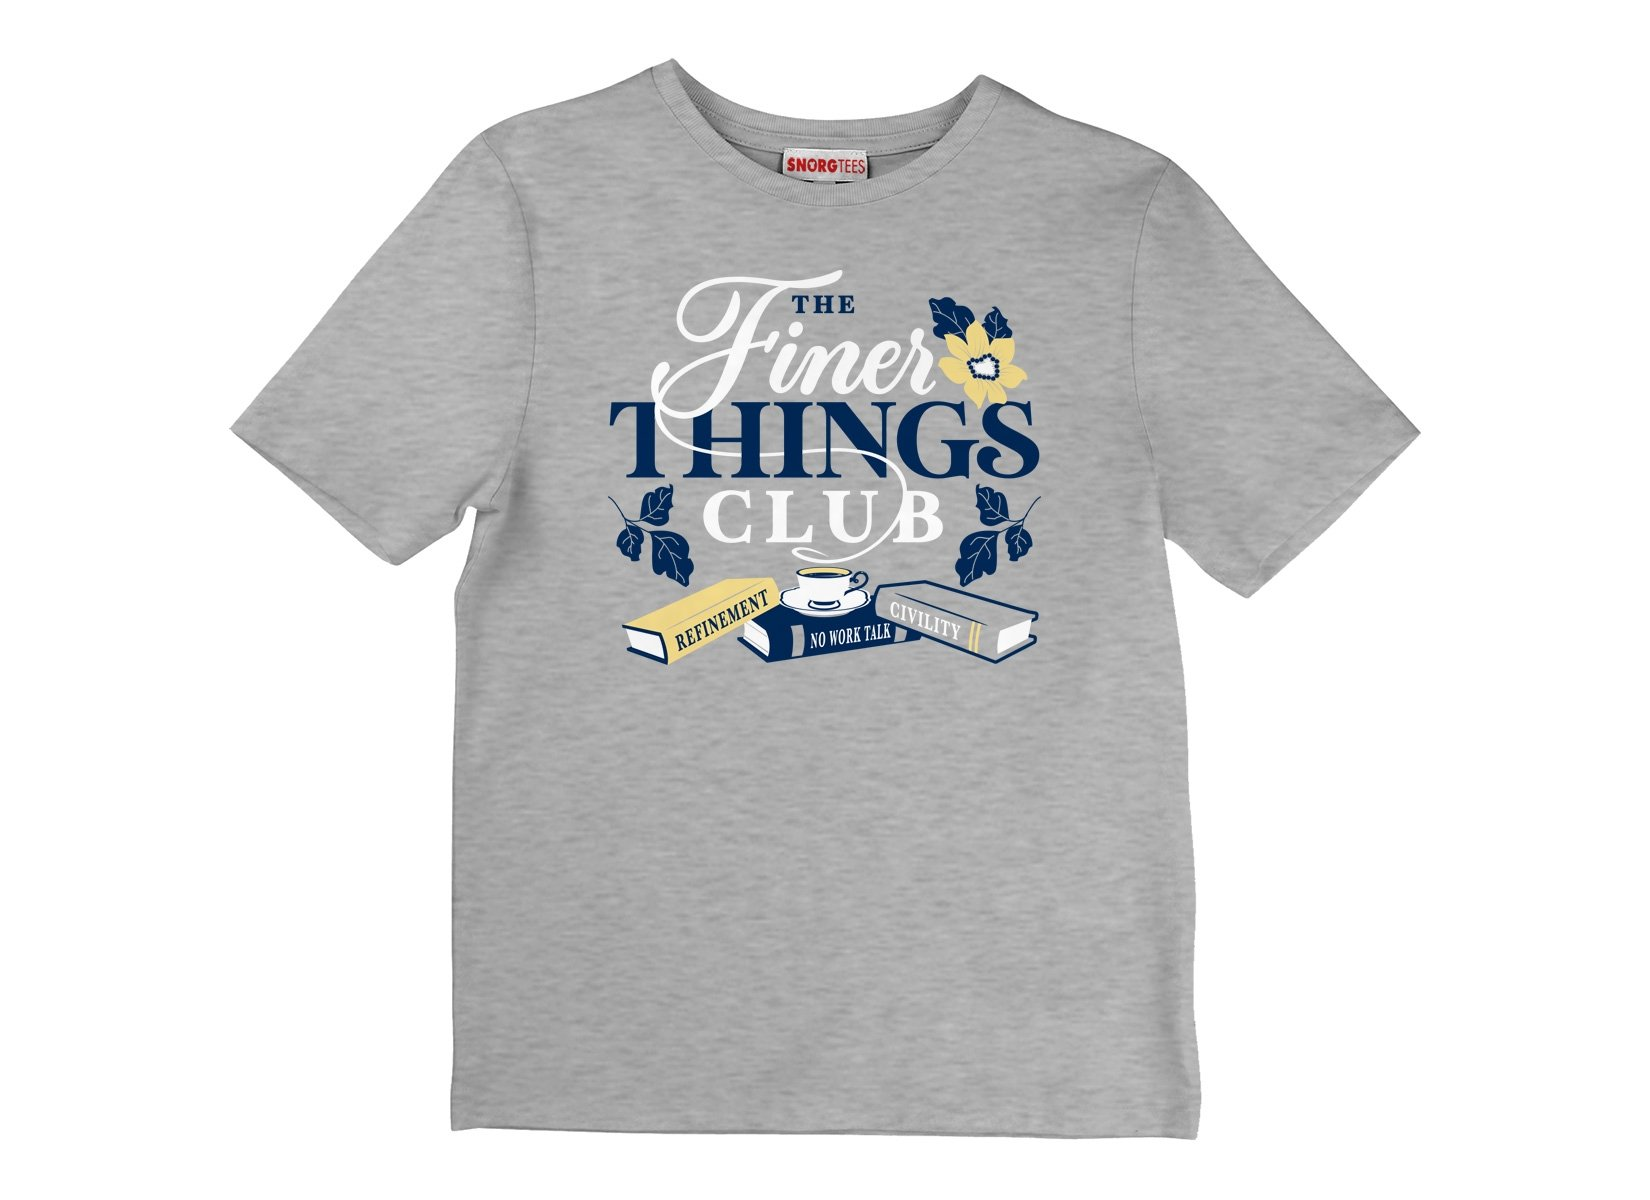 The Finer Things Club on Kids T-Shirt